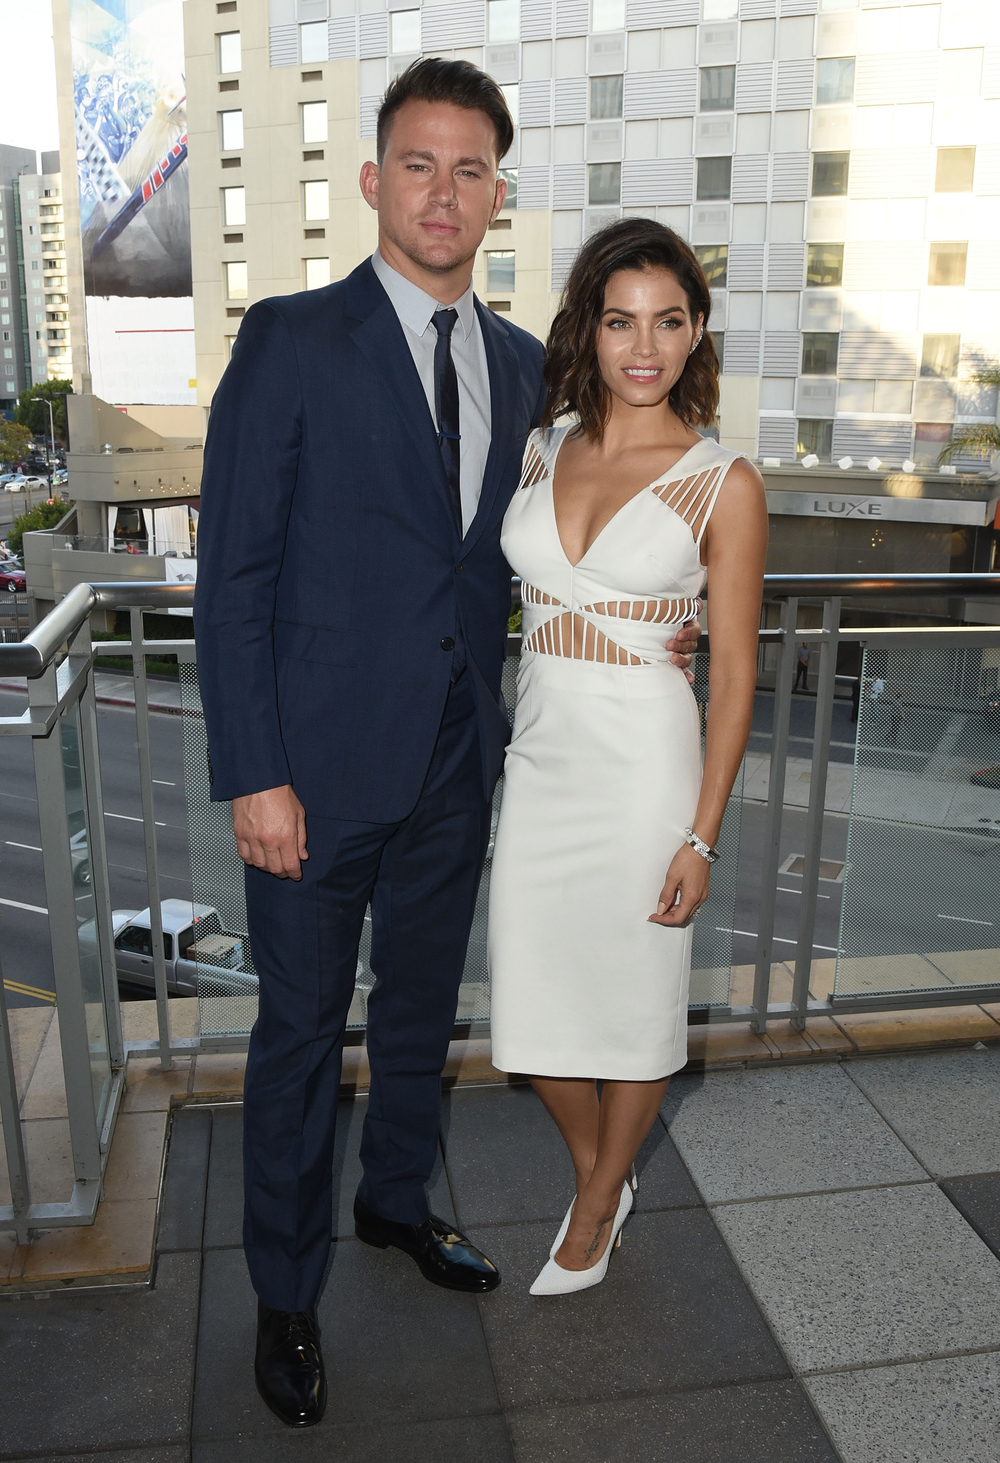 Channing Tatum and his wife actress Jenna Dewan-Tatum